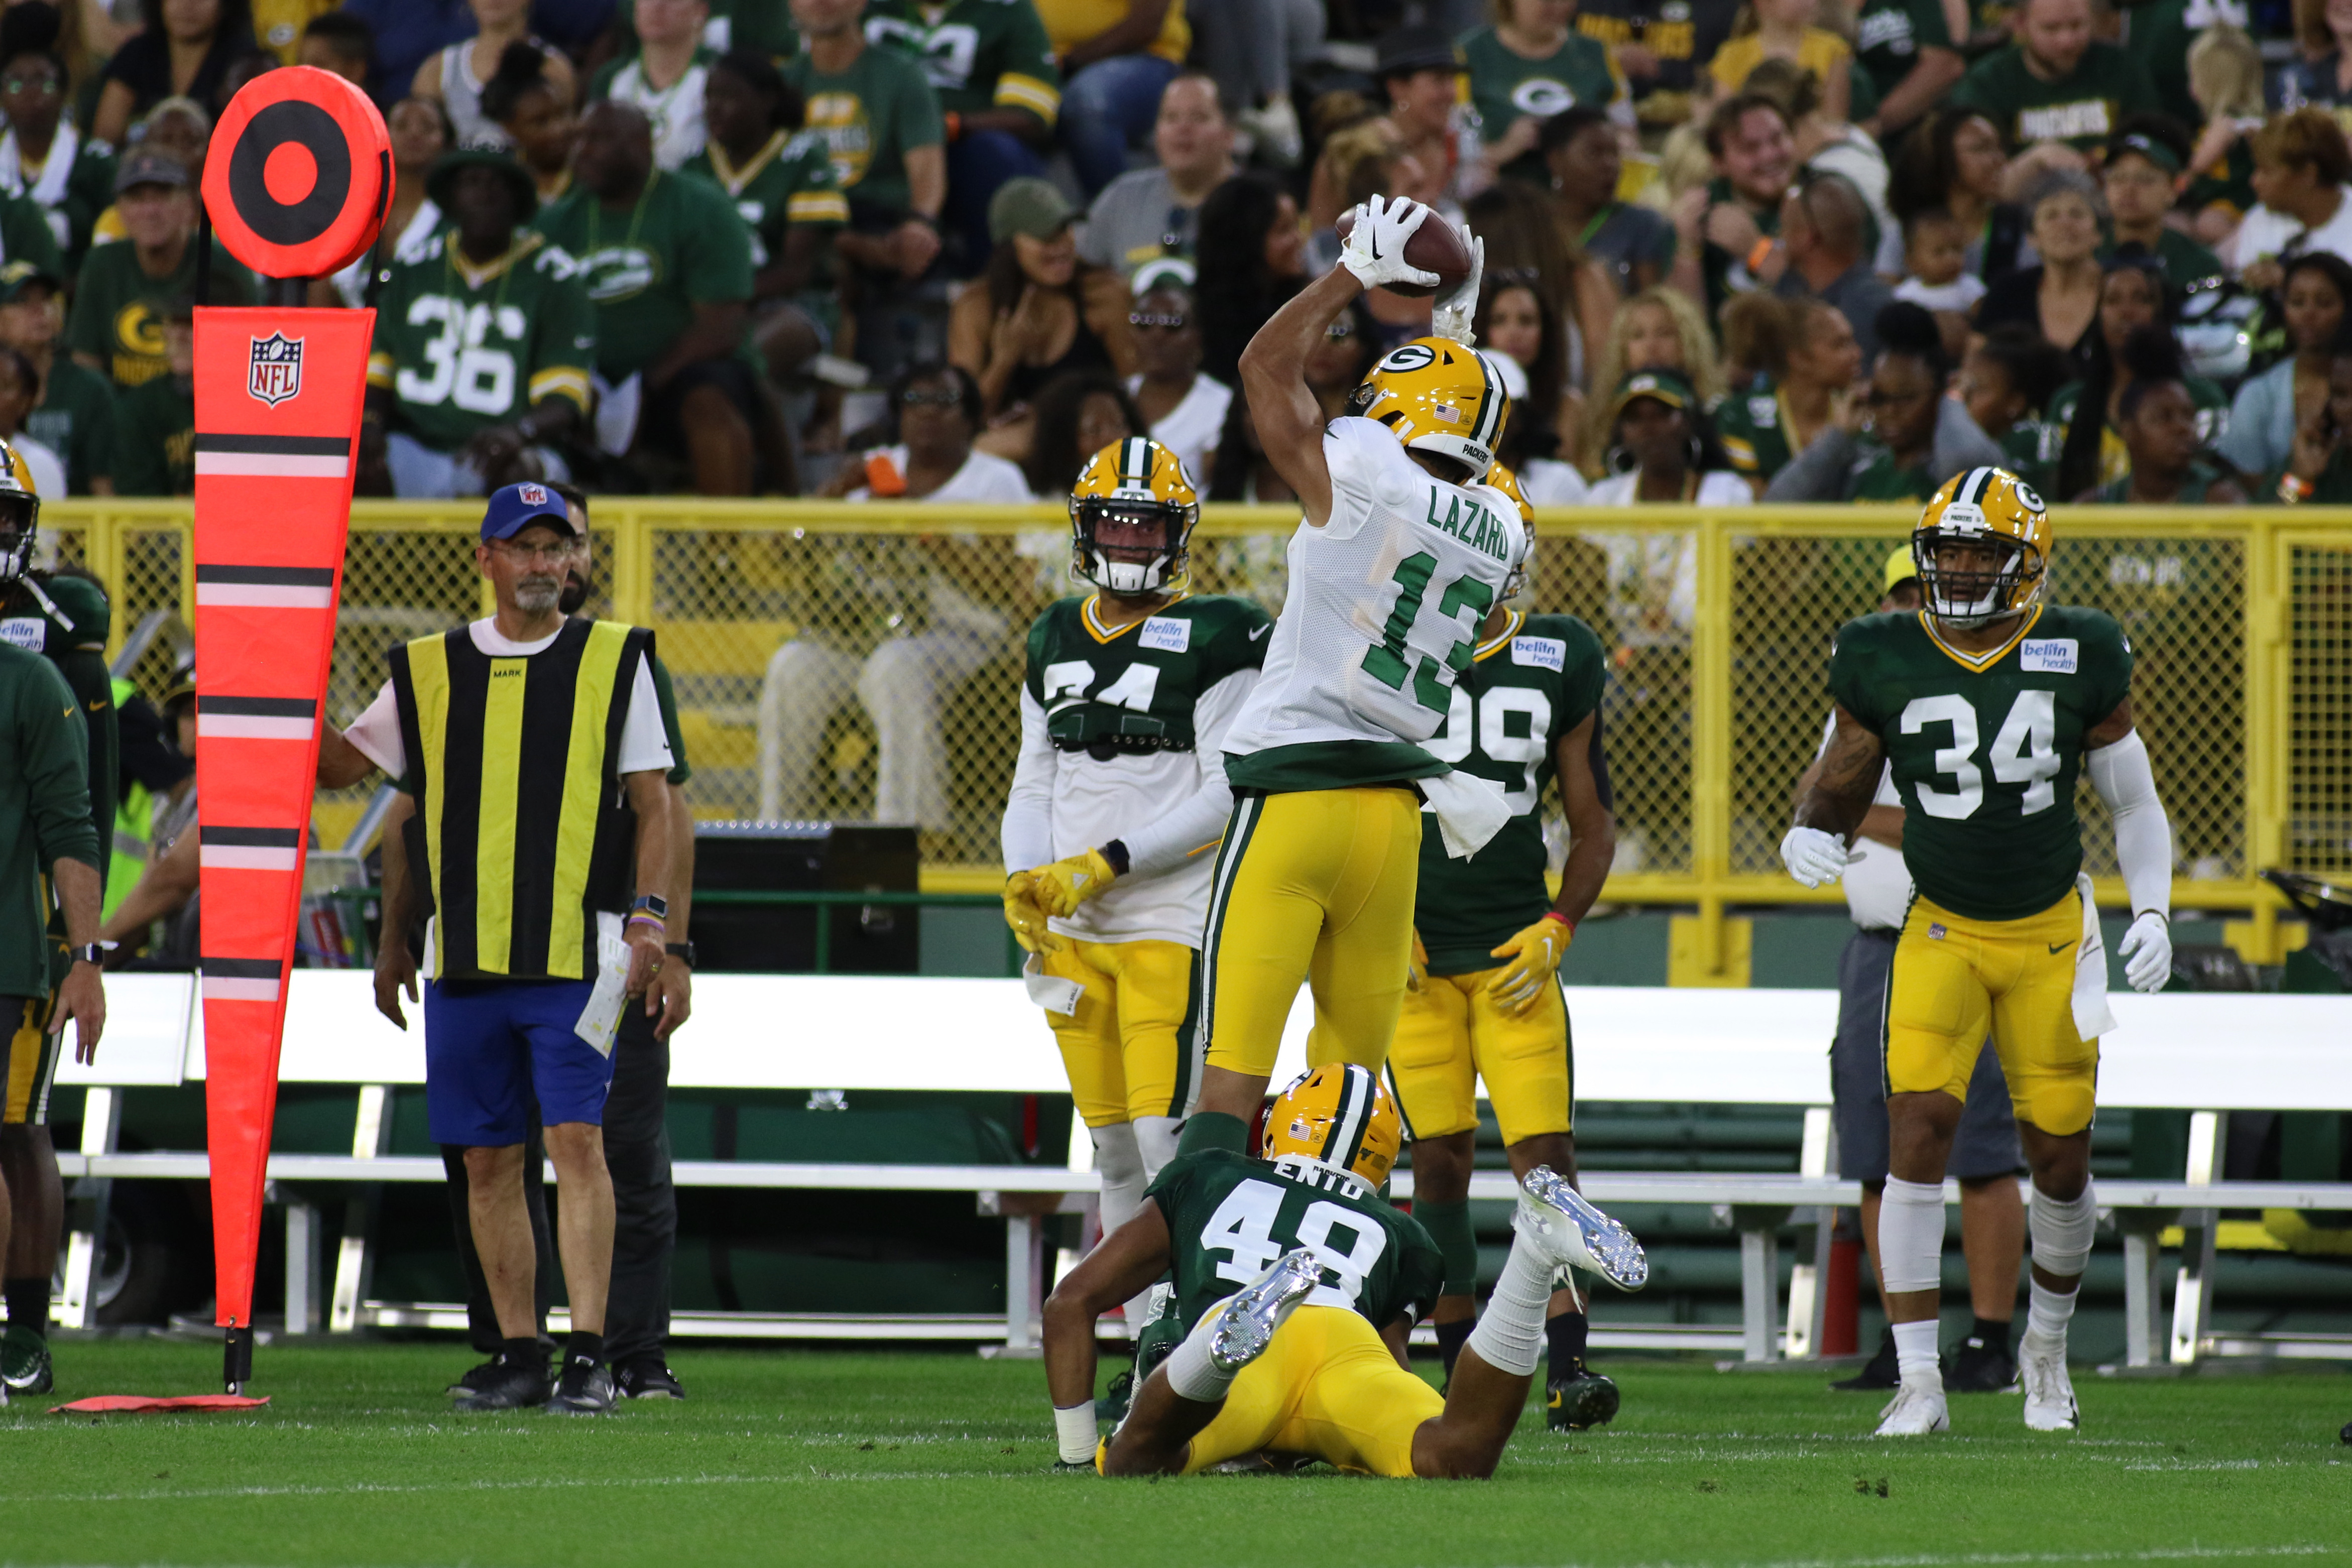 NFL: AUG 02 Packers Training Camp & Family Night